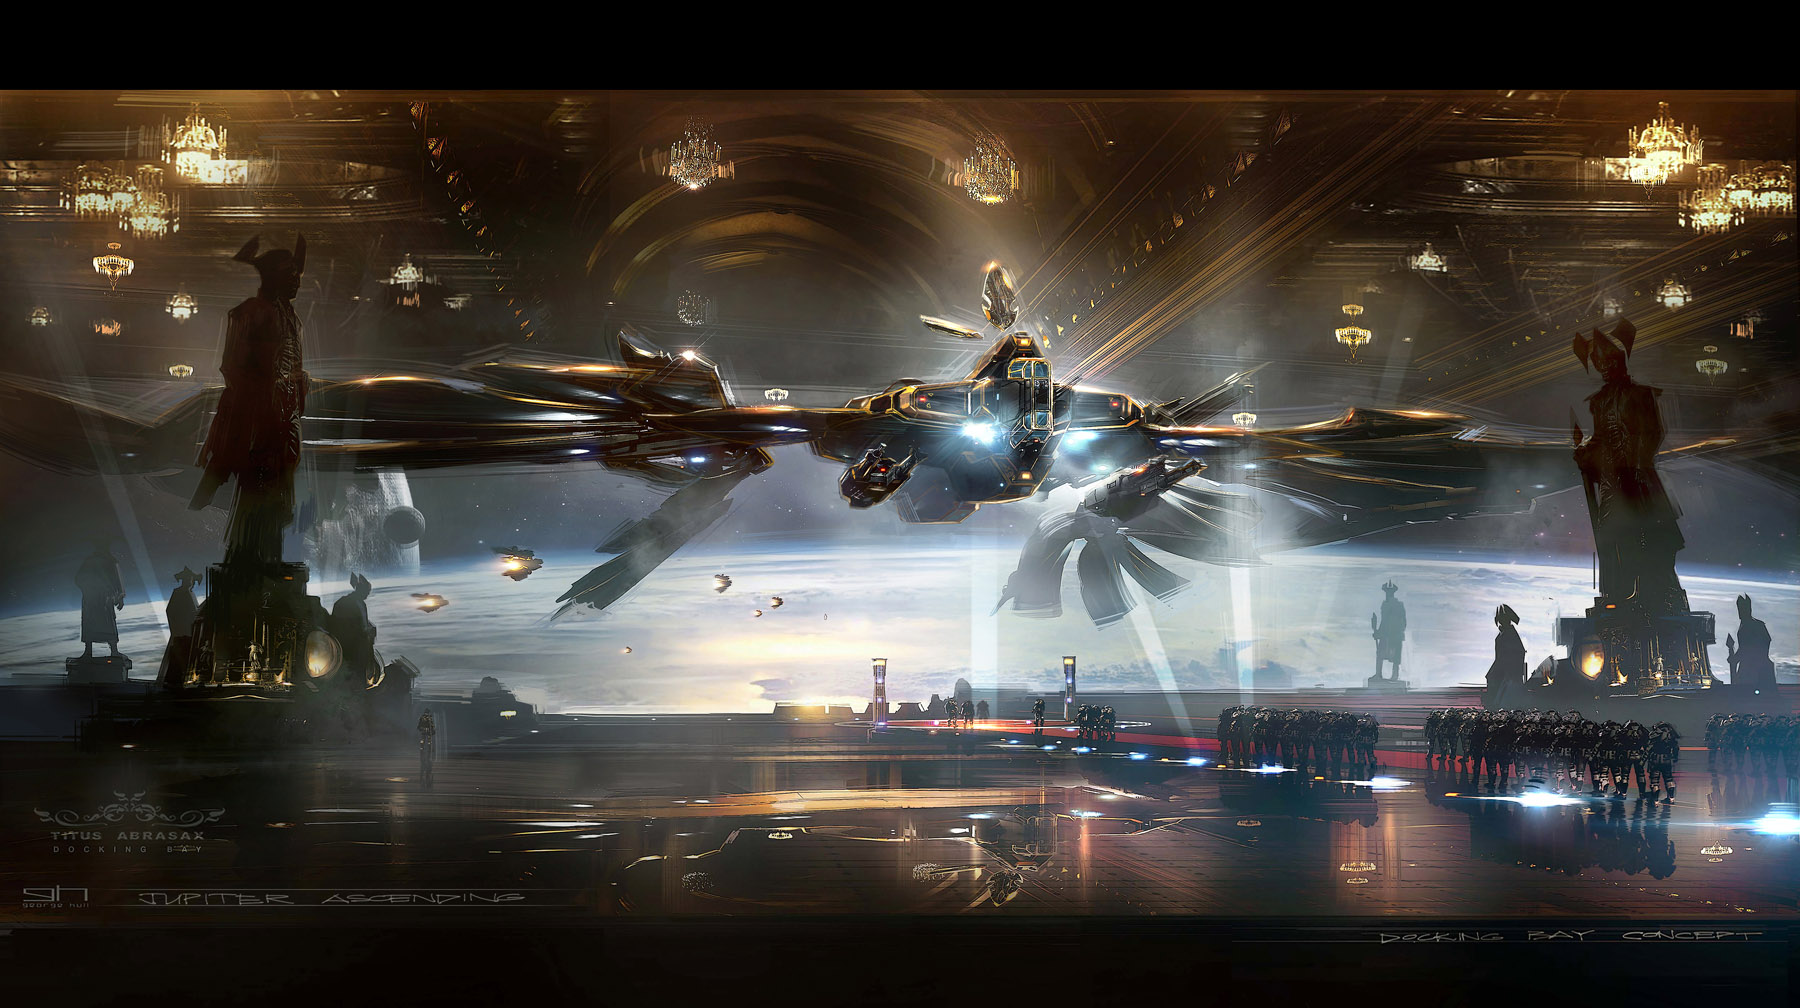 The Spectacular Science Fiction Concept Art Of Jupiter